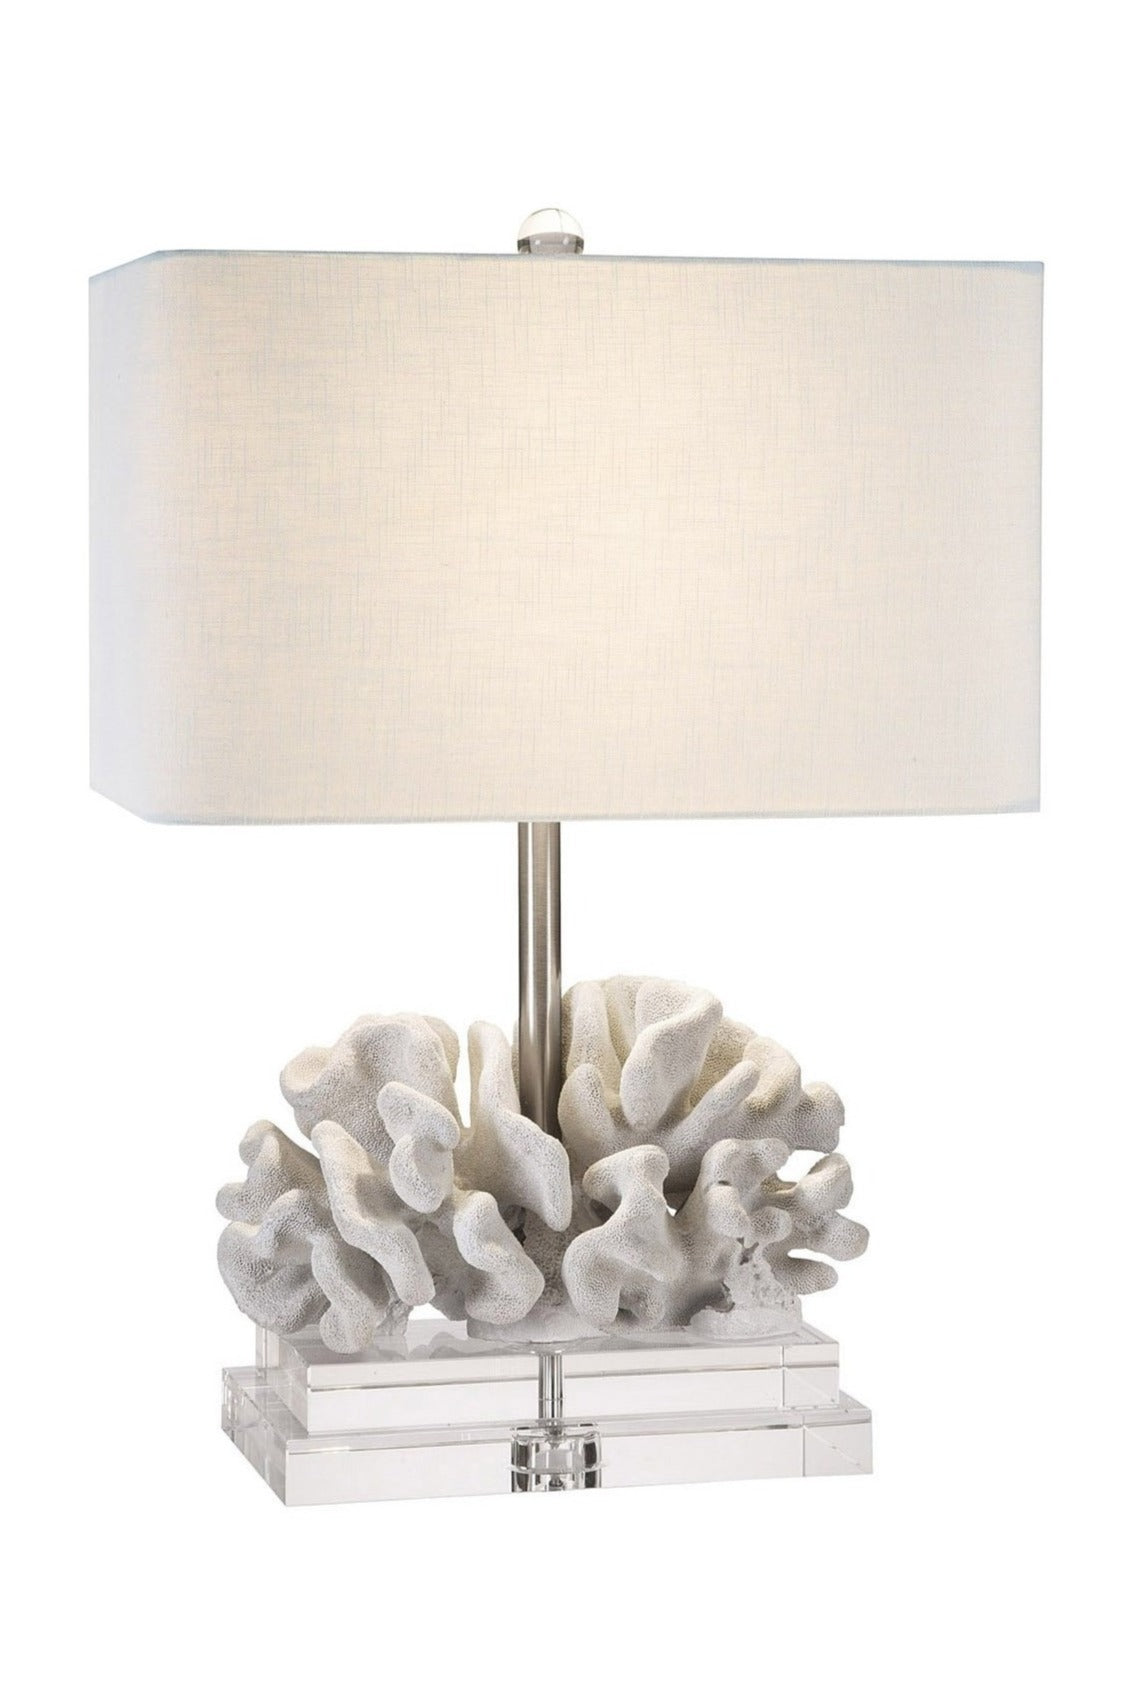 Elkhorn Coral Table Lamp - Couture Lamps